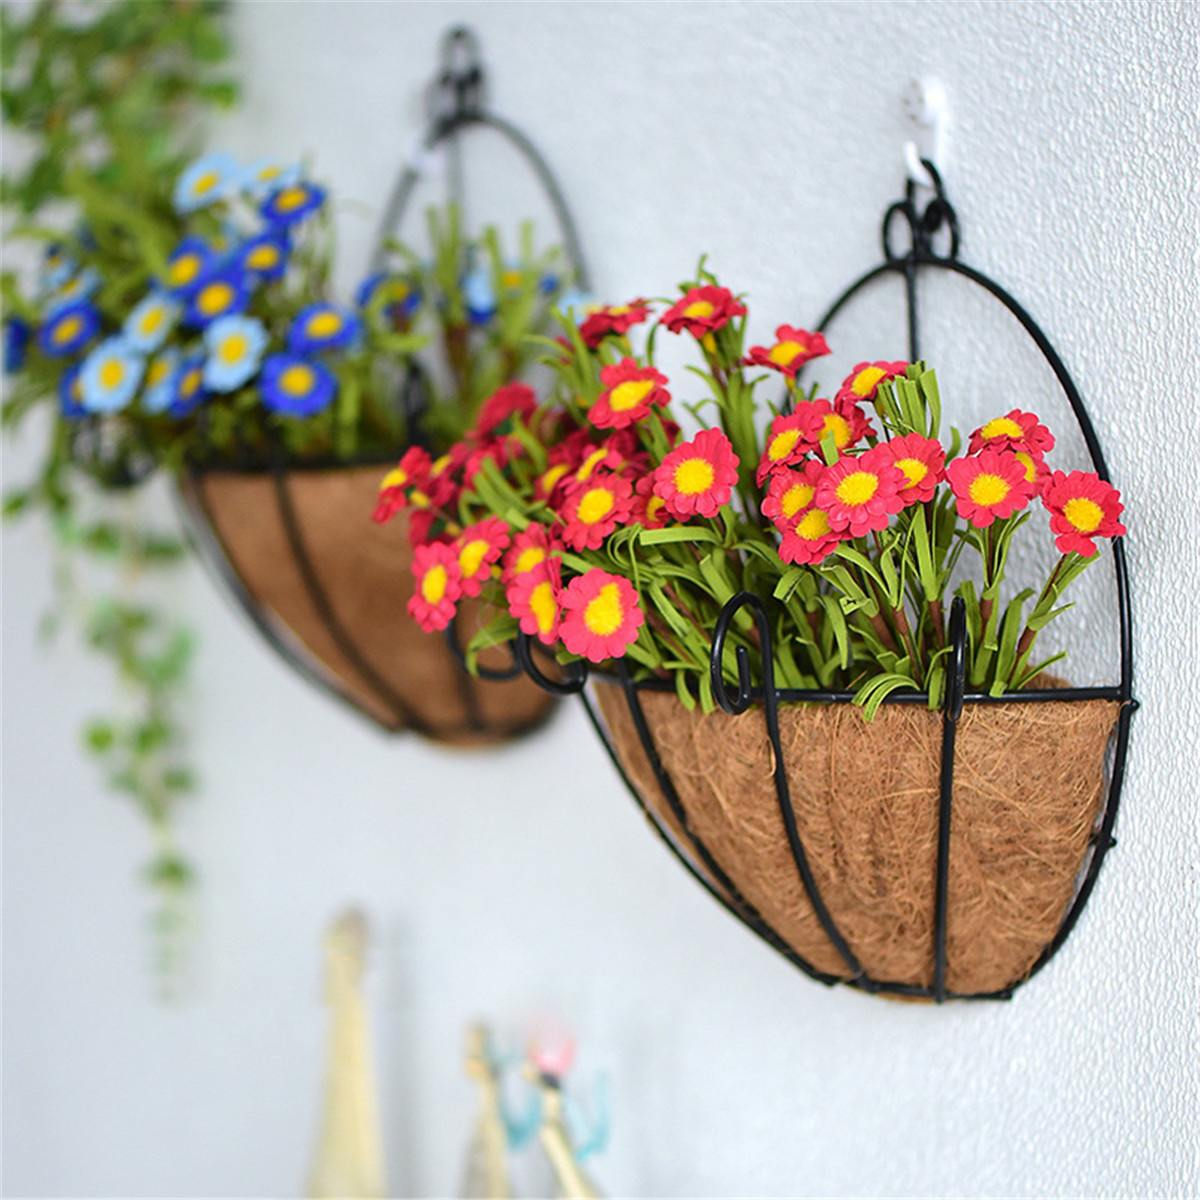 Us 6 31 21 Off Iron Wall Hanging Flower Basket Shelves Wall Decoration Plant Pots For Offices Home Garden Wall Farmhouse Decor Planter In Decorative